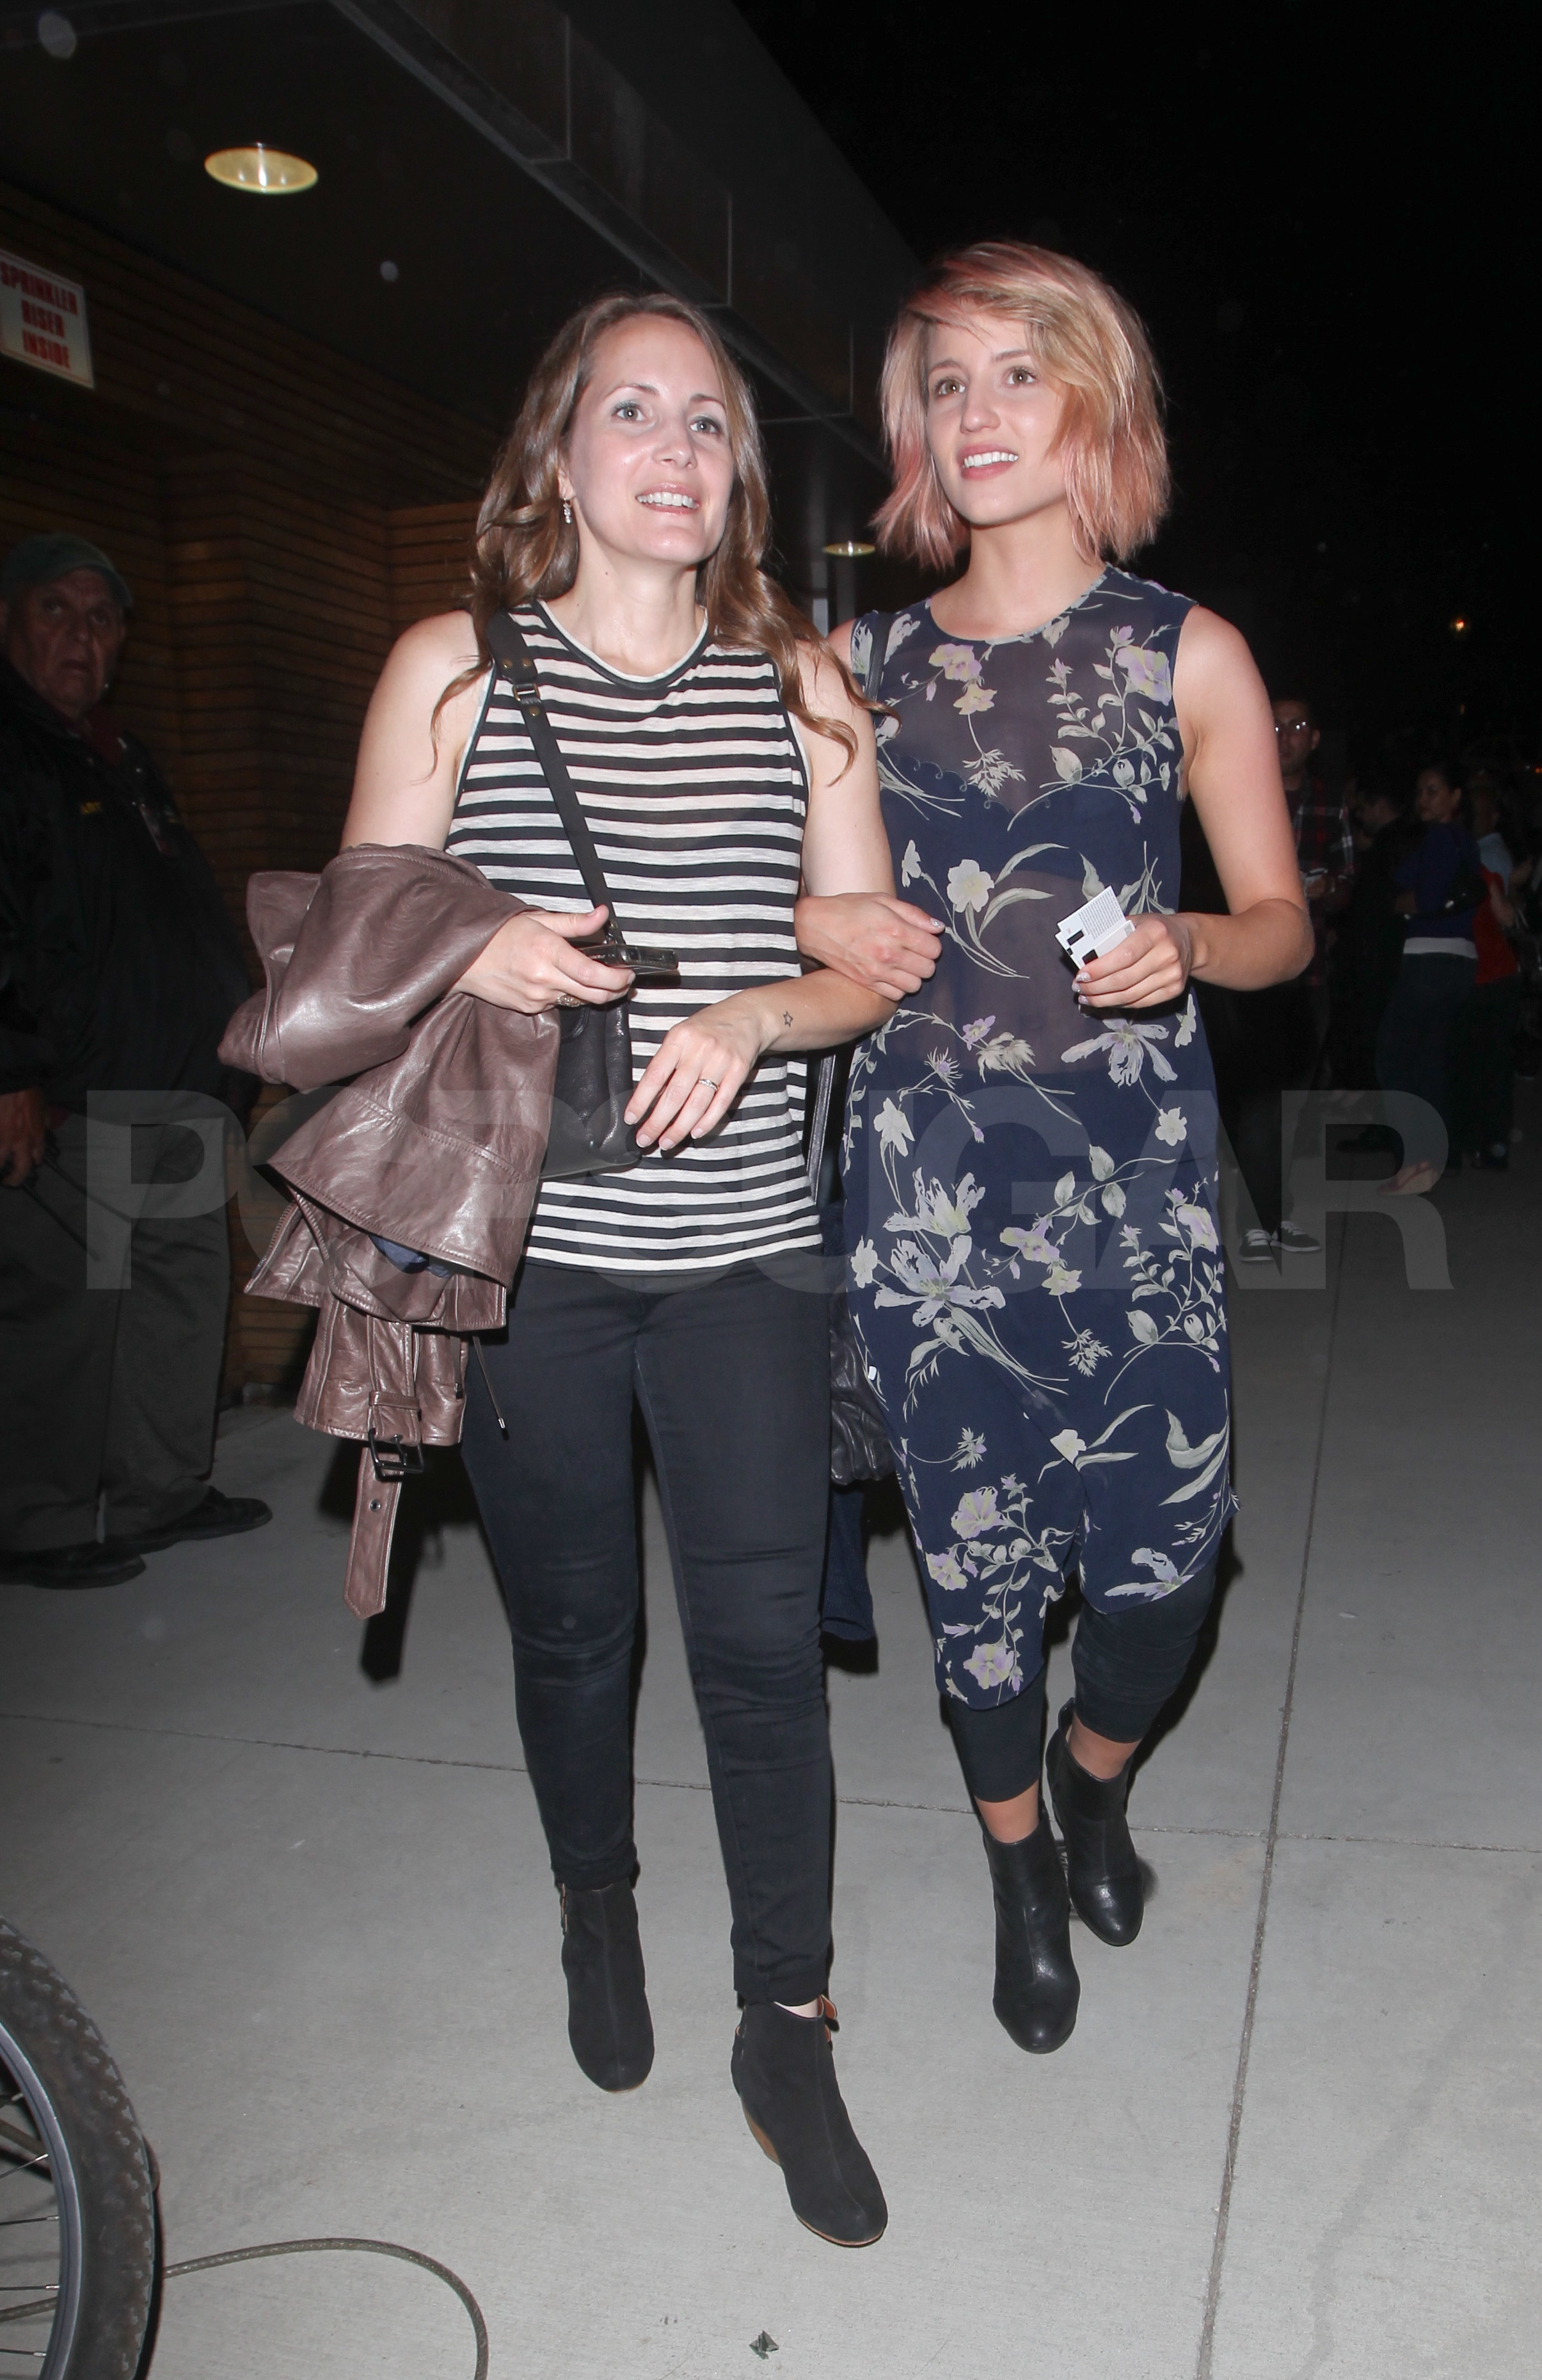 Pink-haired Dianna Agron at Adele's LA show.